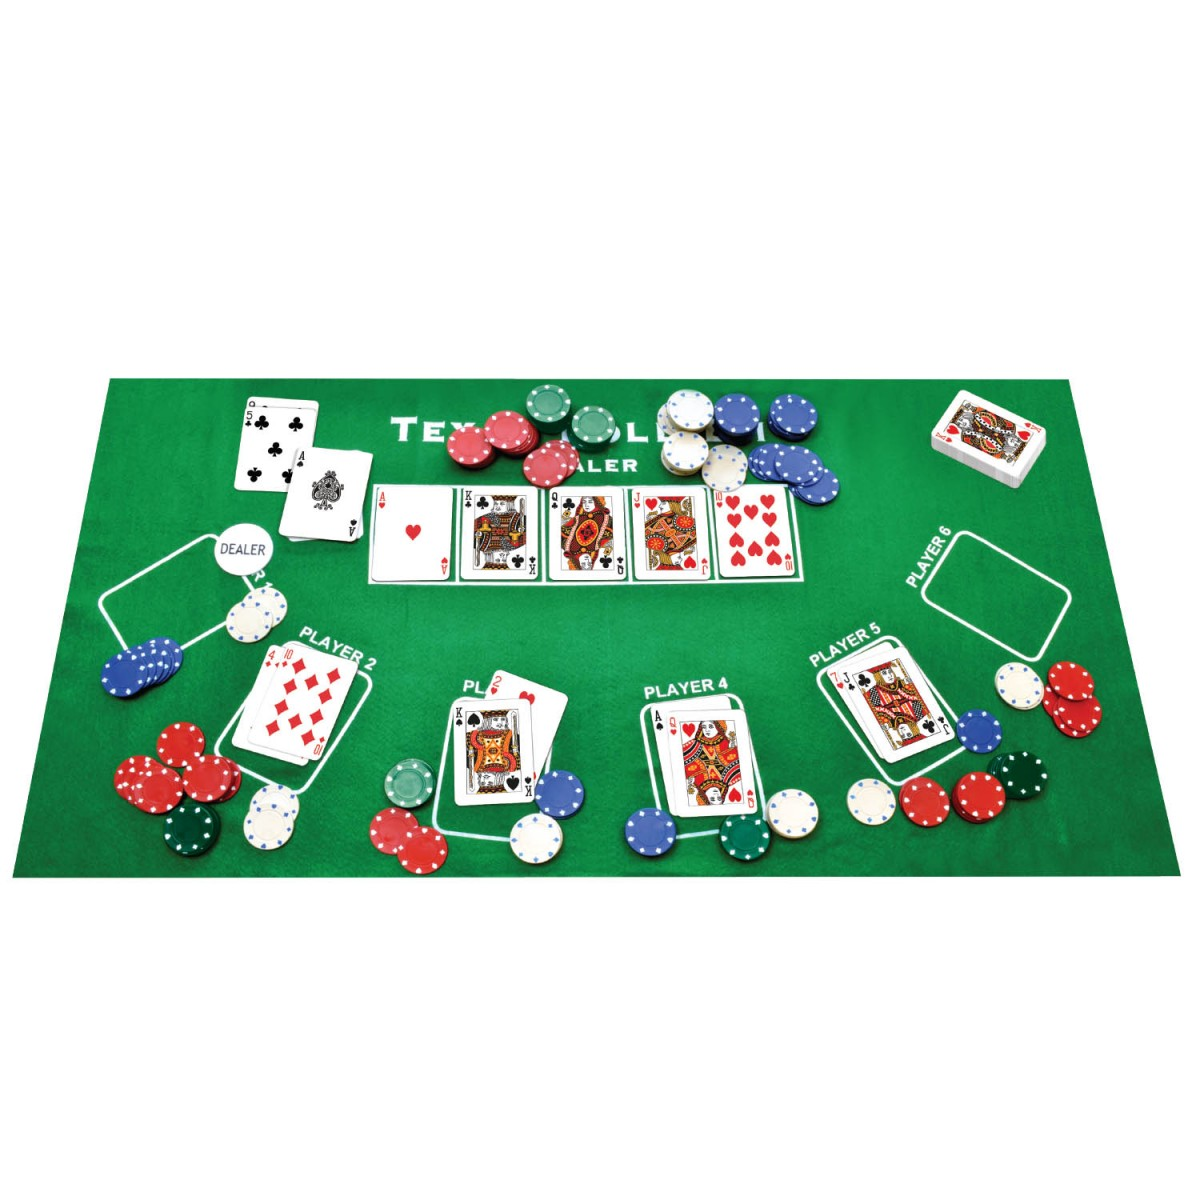 Poker ii is